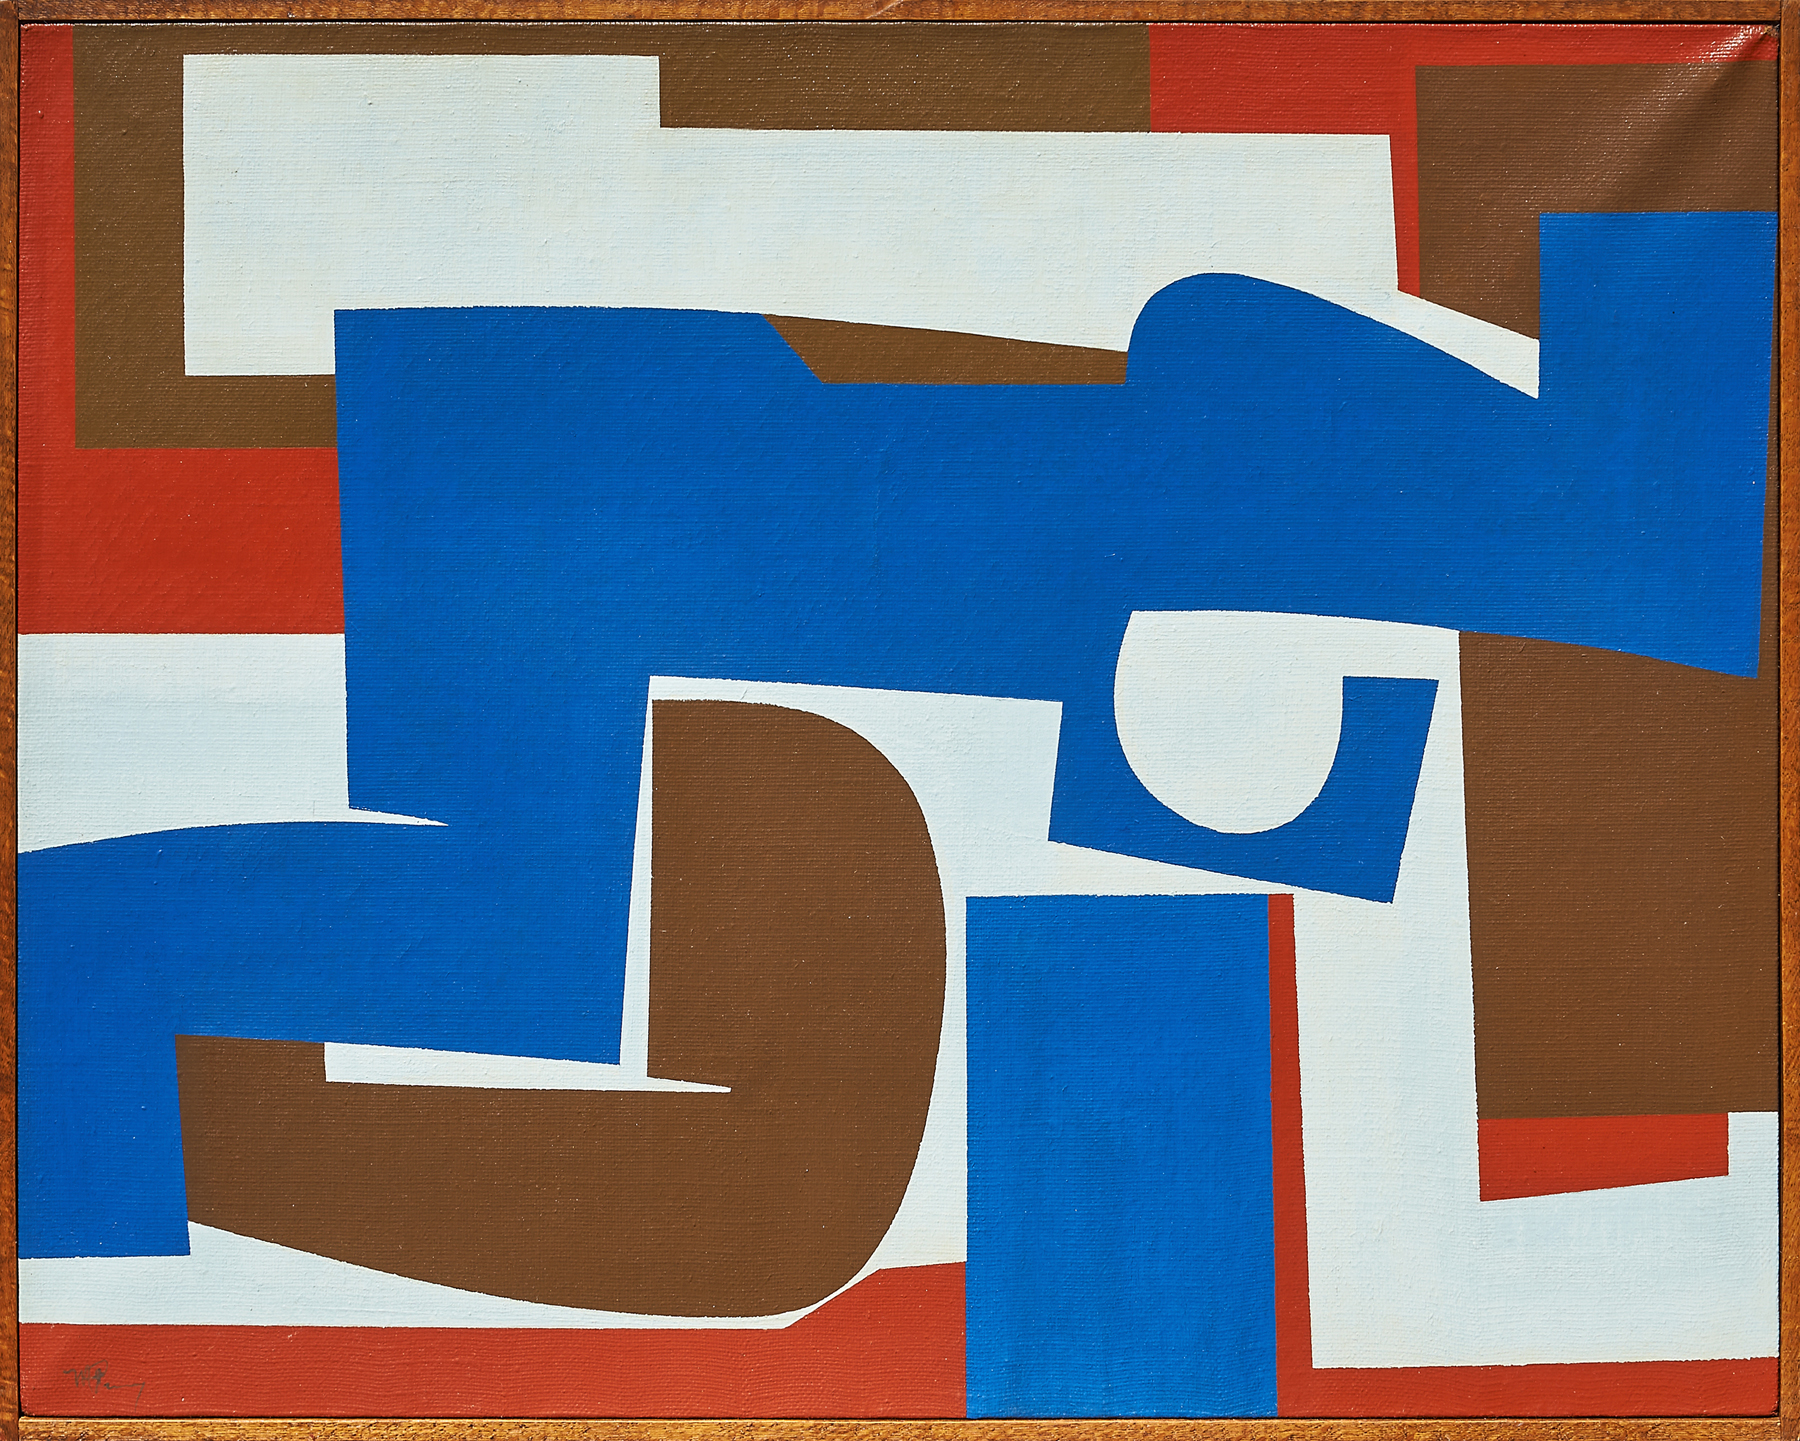 Nuvae, a 1968 abstract canvas by Mavis Pusey, features large blocks of royal blue, milk chocolate brown, red, and white paint.